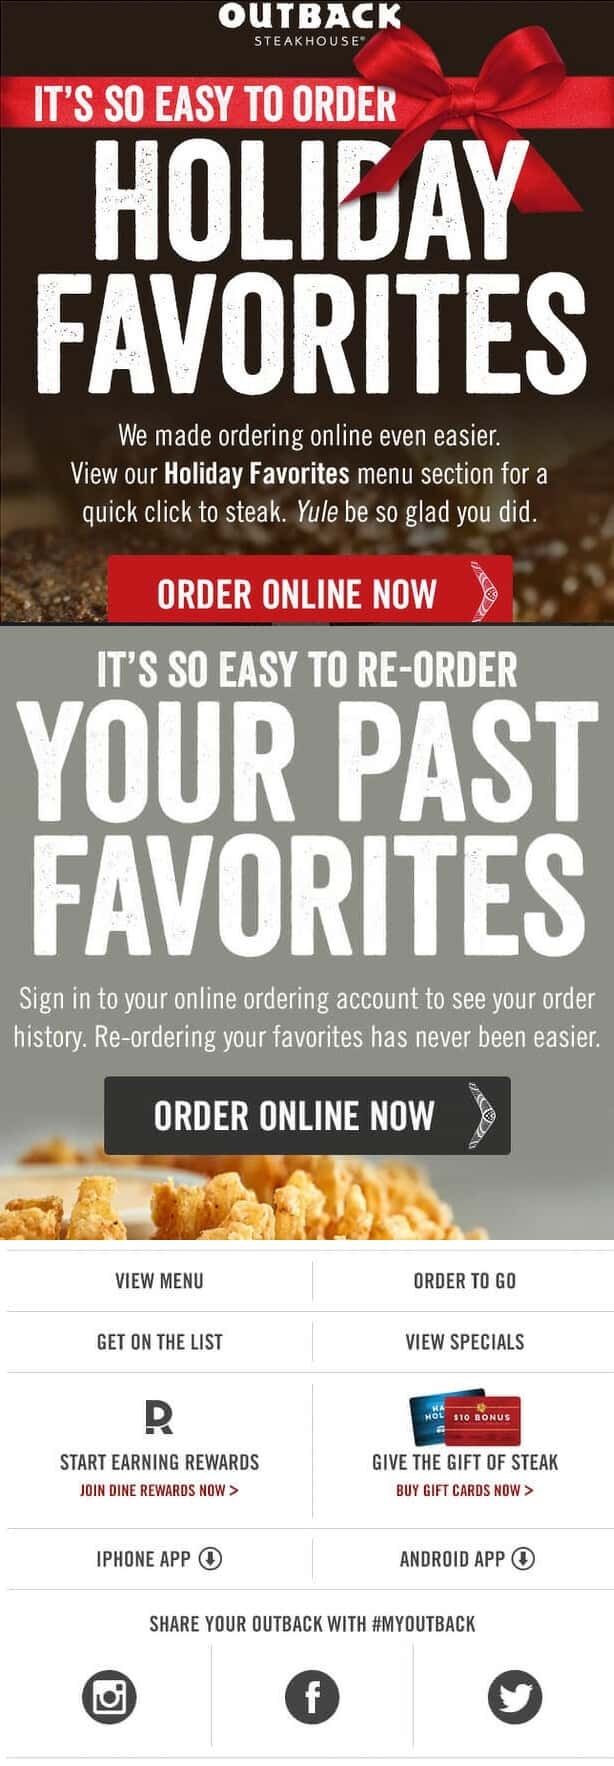 Outback Steakhouse email example clear sections & practical information added